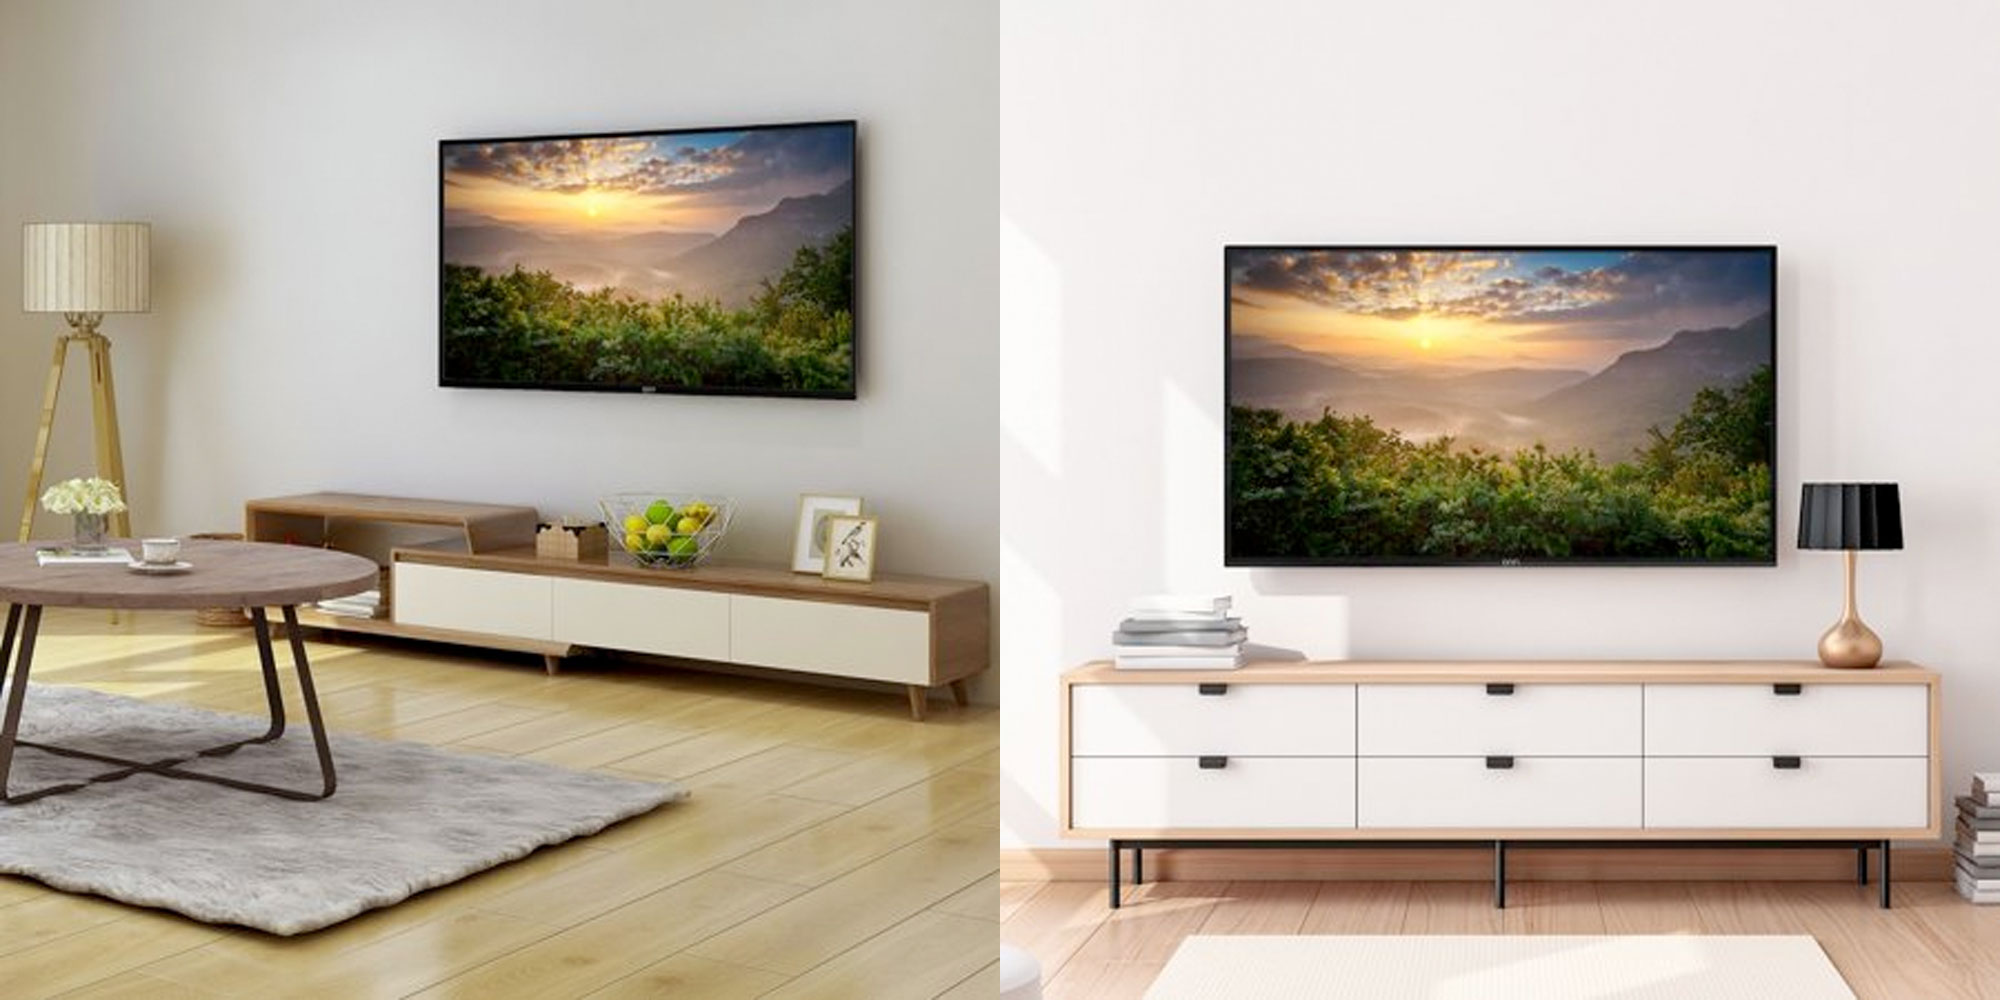 Walmart's ONN TV brand offers budget-friendly prices, including a 65-inch 4K model for under $500